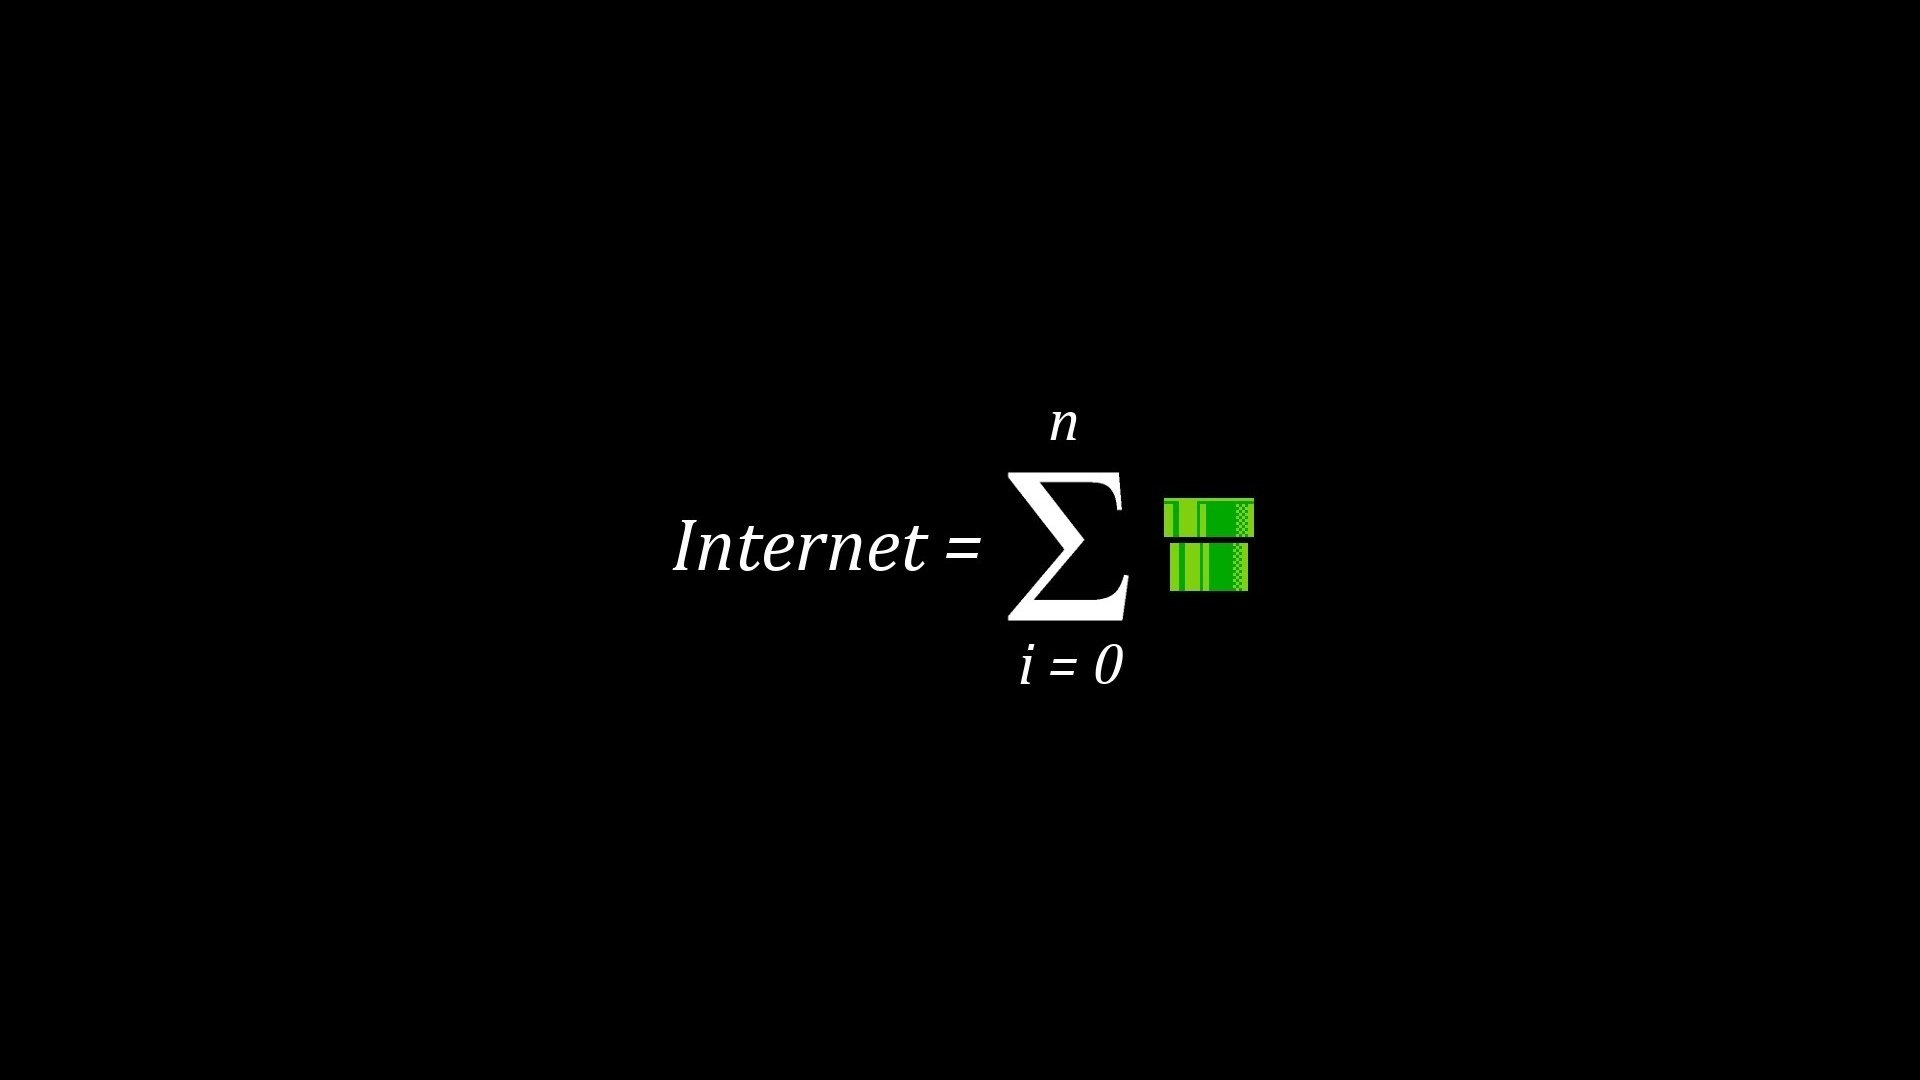 500 pages of paper